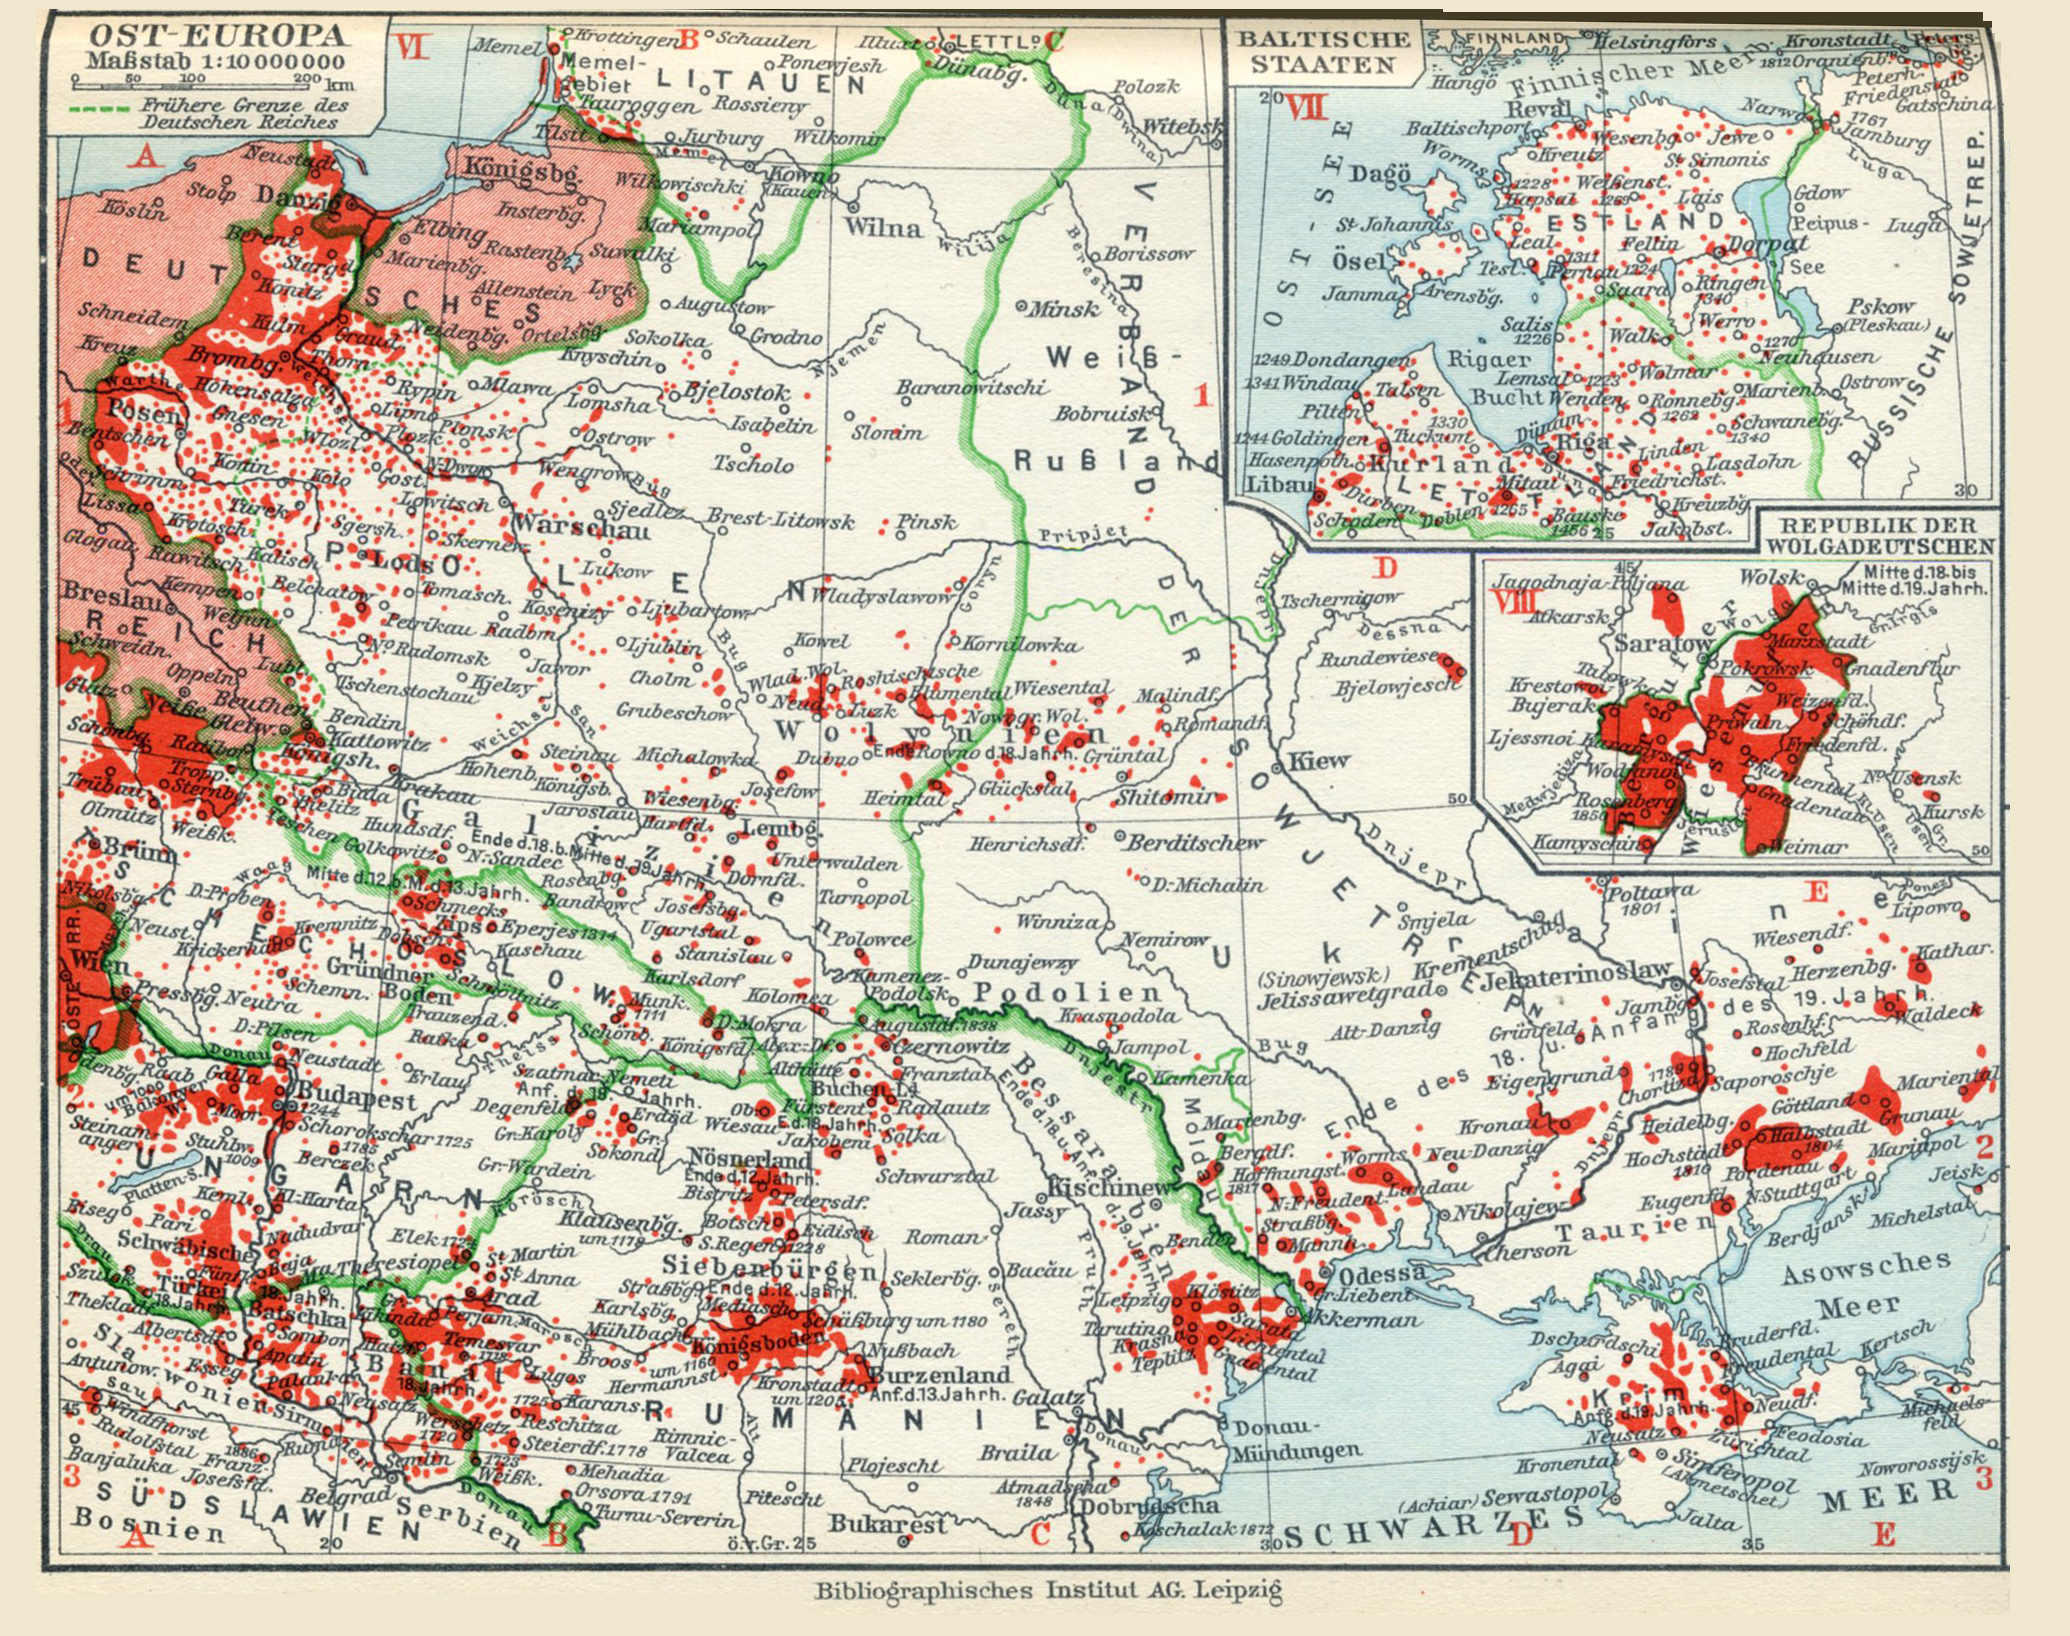 A 1932 map of the ethnic German population in Eastern Europe Axis